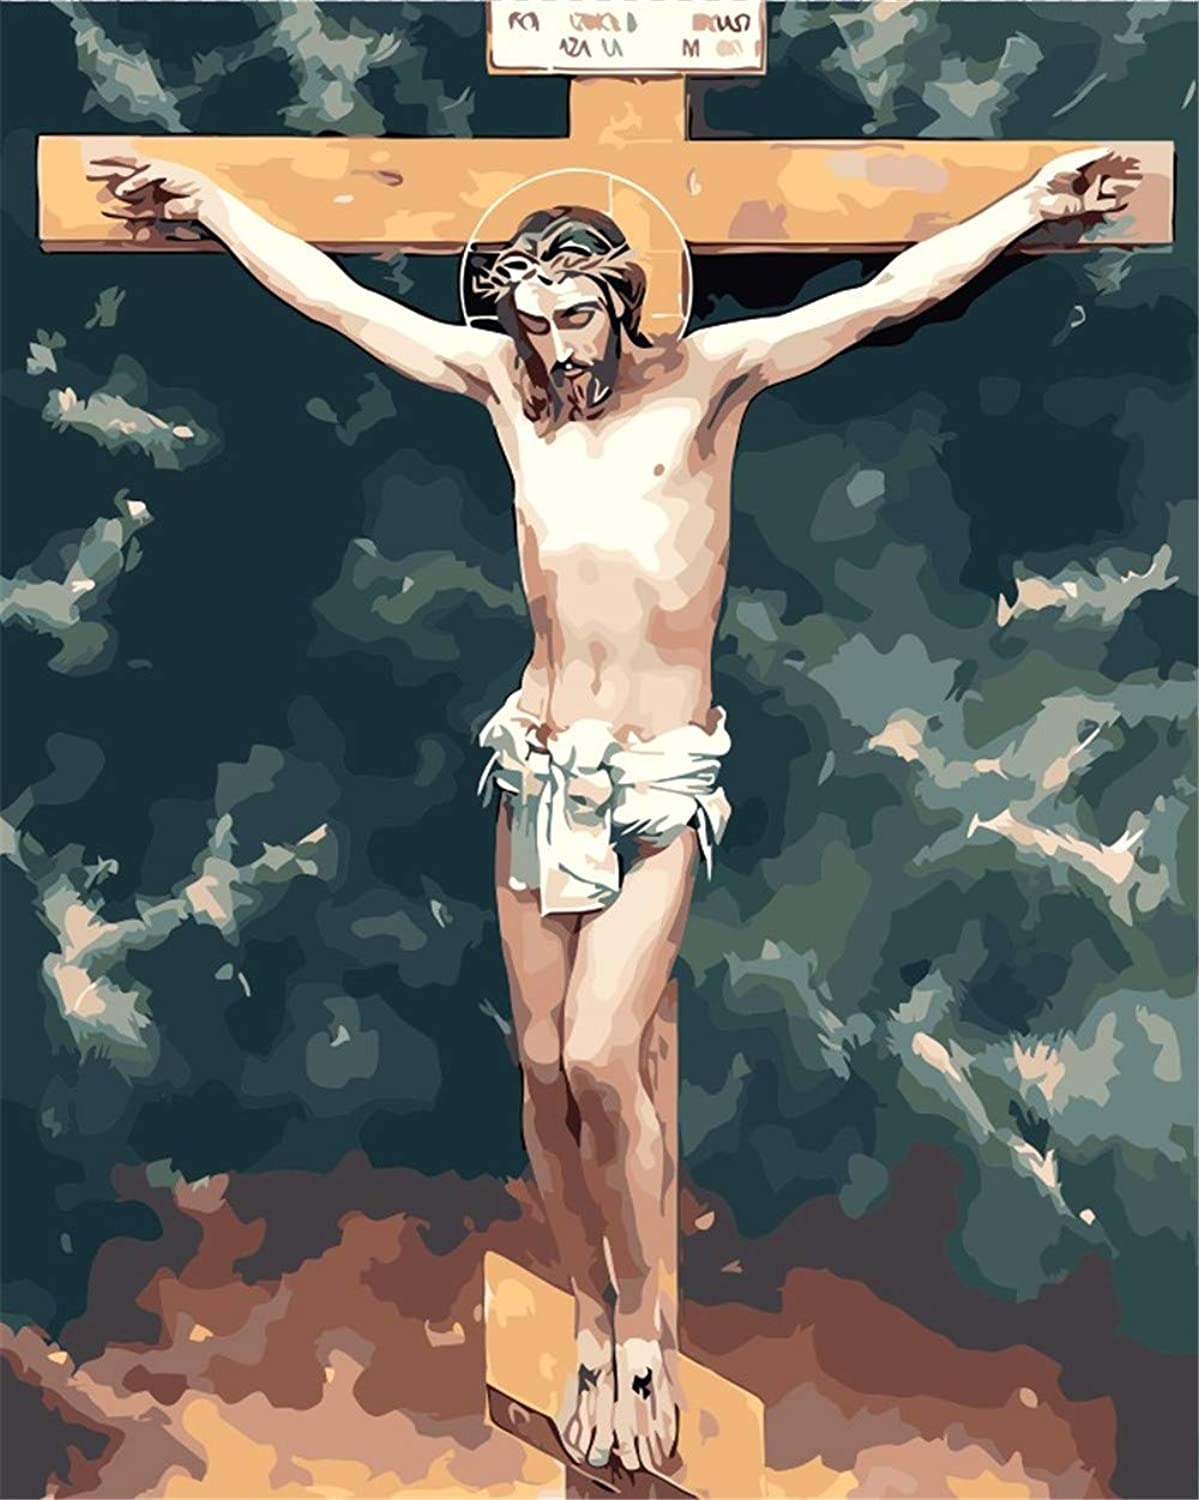 DIY Oil Paint by Number Kit for Adults Beginner 16x20 Inch - Jesus on Cross,Drawing with Brushes Living Room Decor Decorations Gifts (Framed)